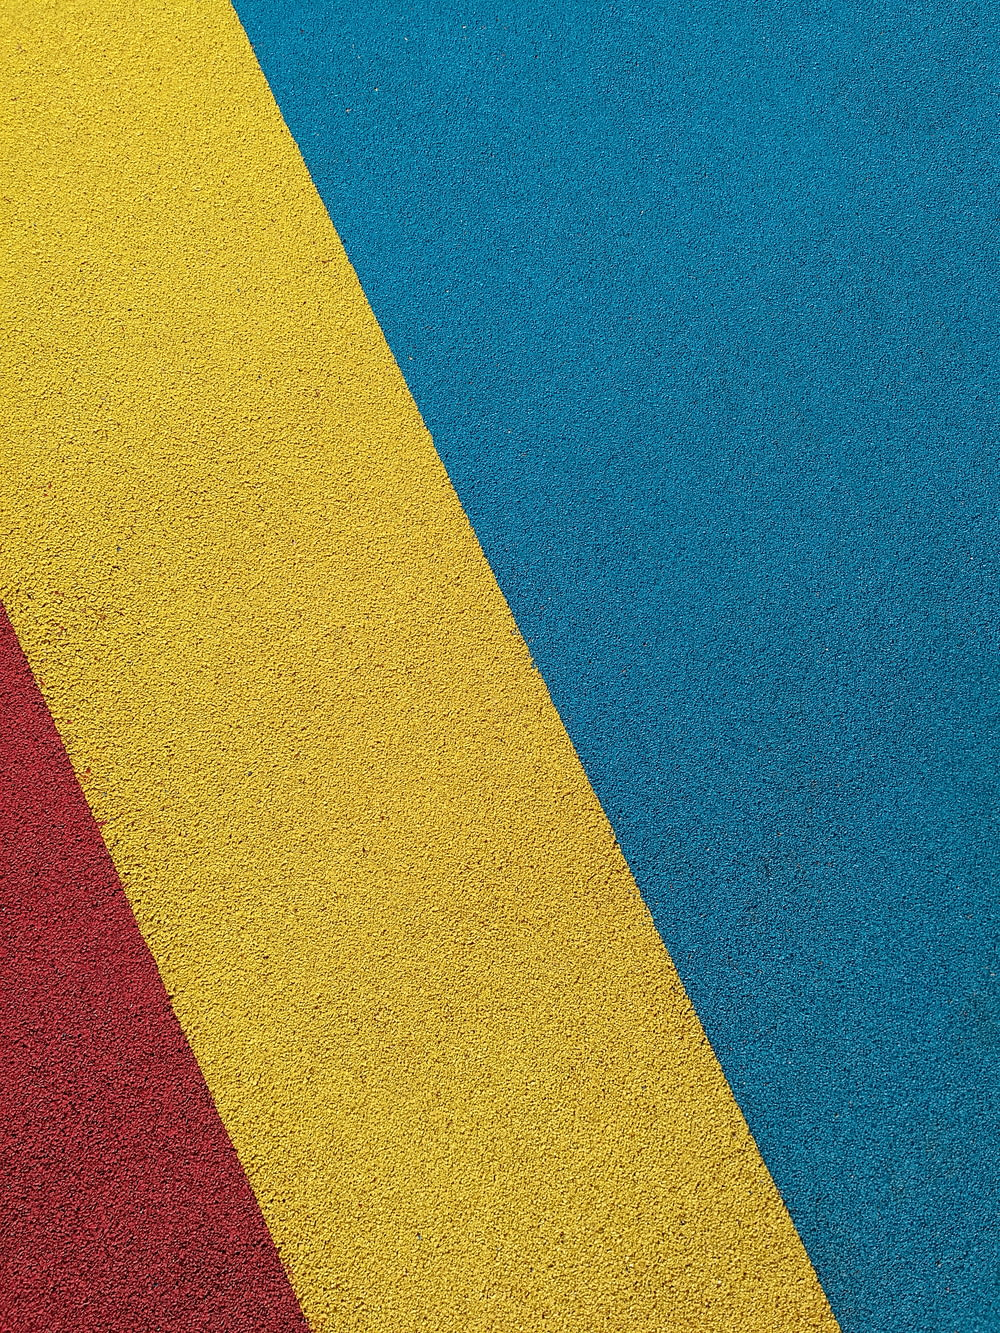 yellow red and blue striped textile